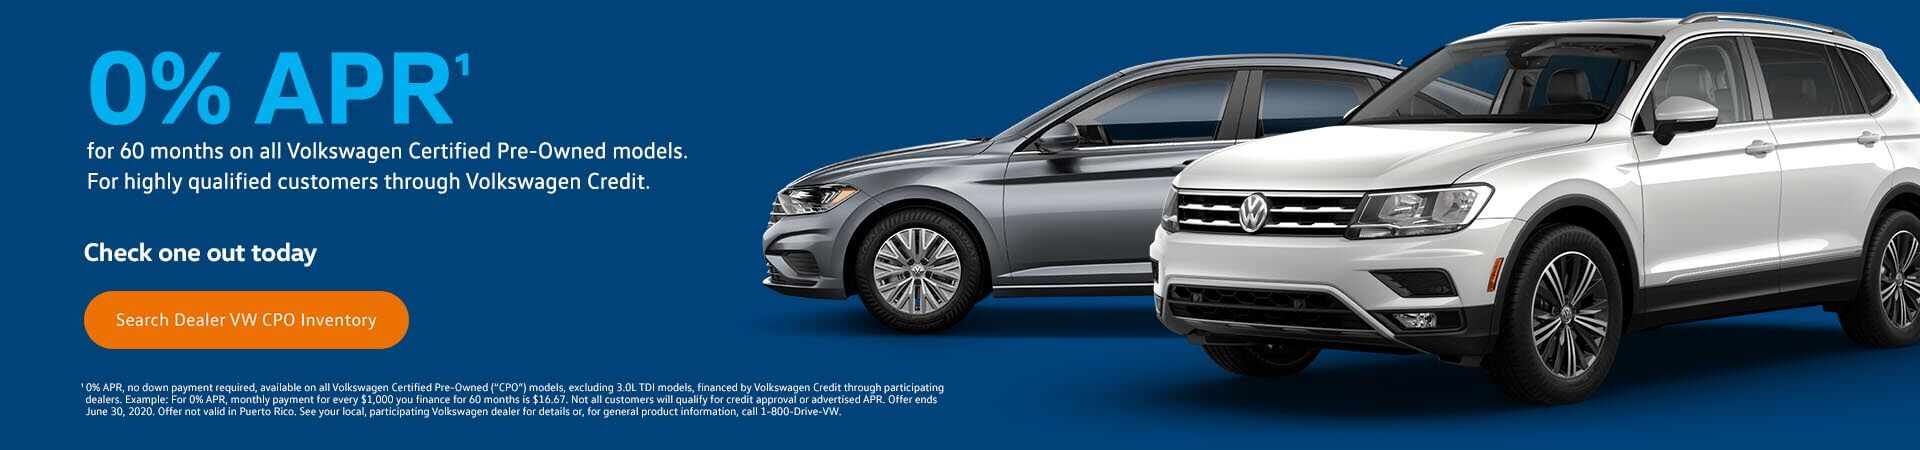 0% APR on VW CPO models